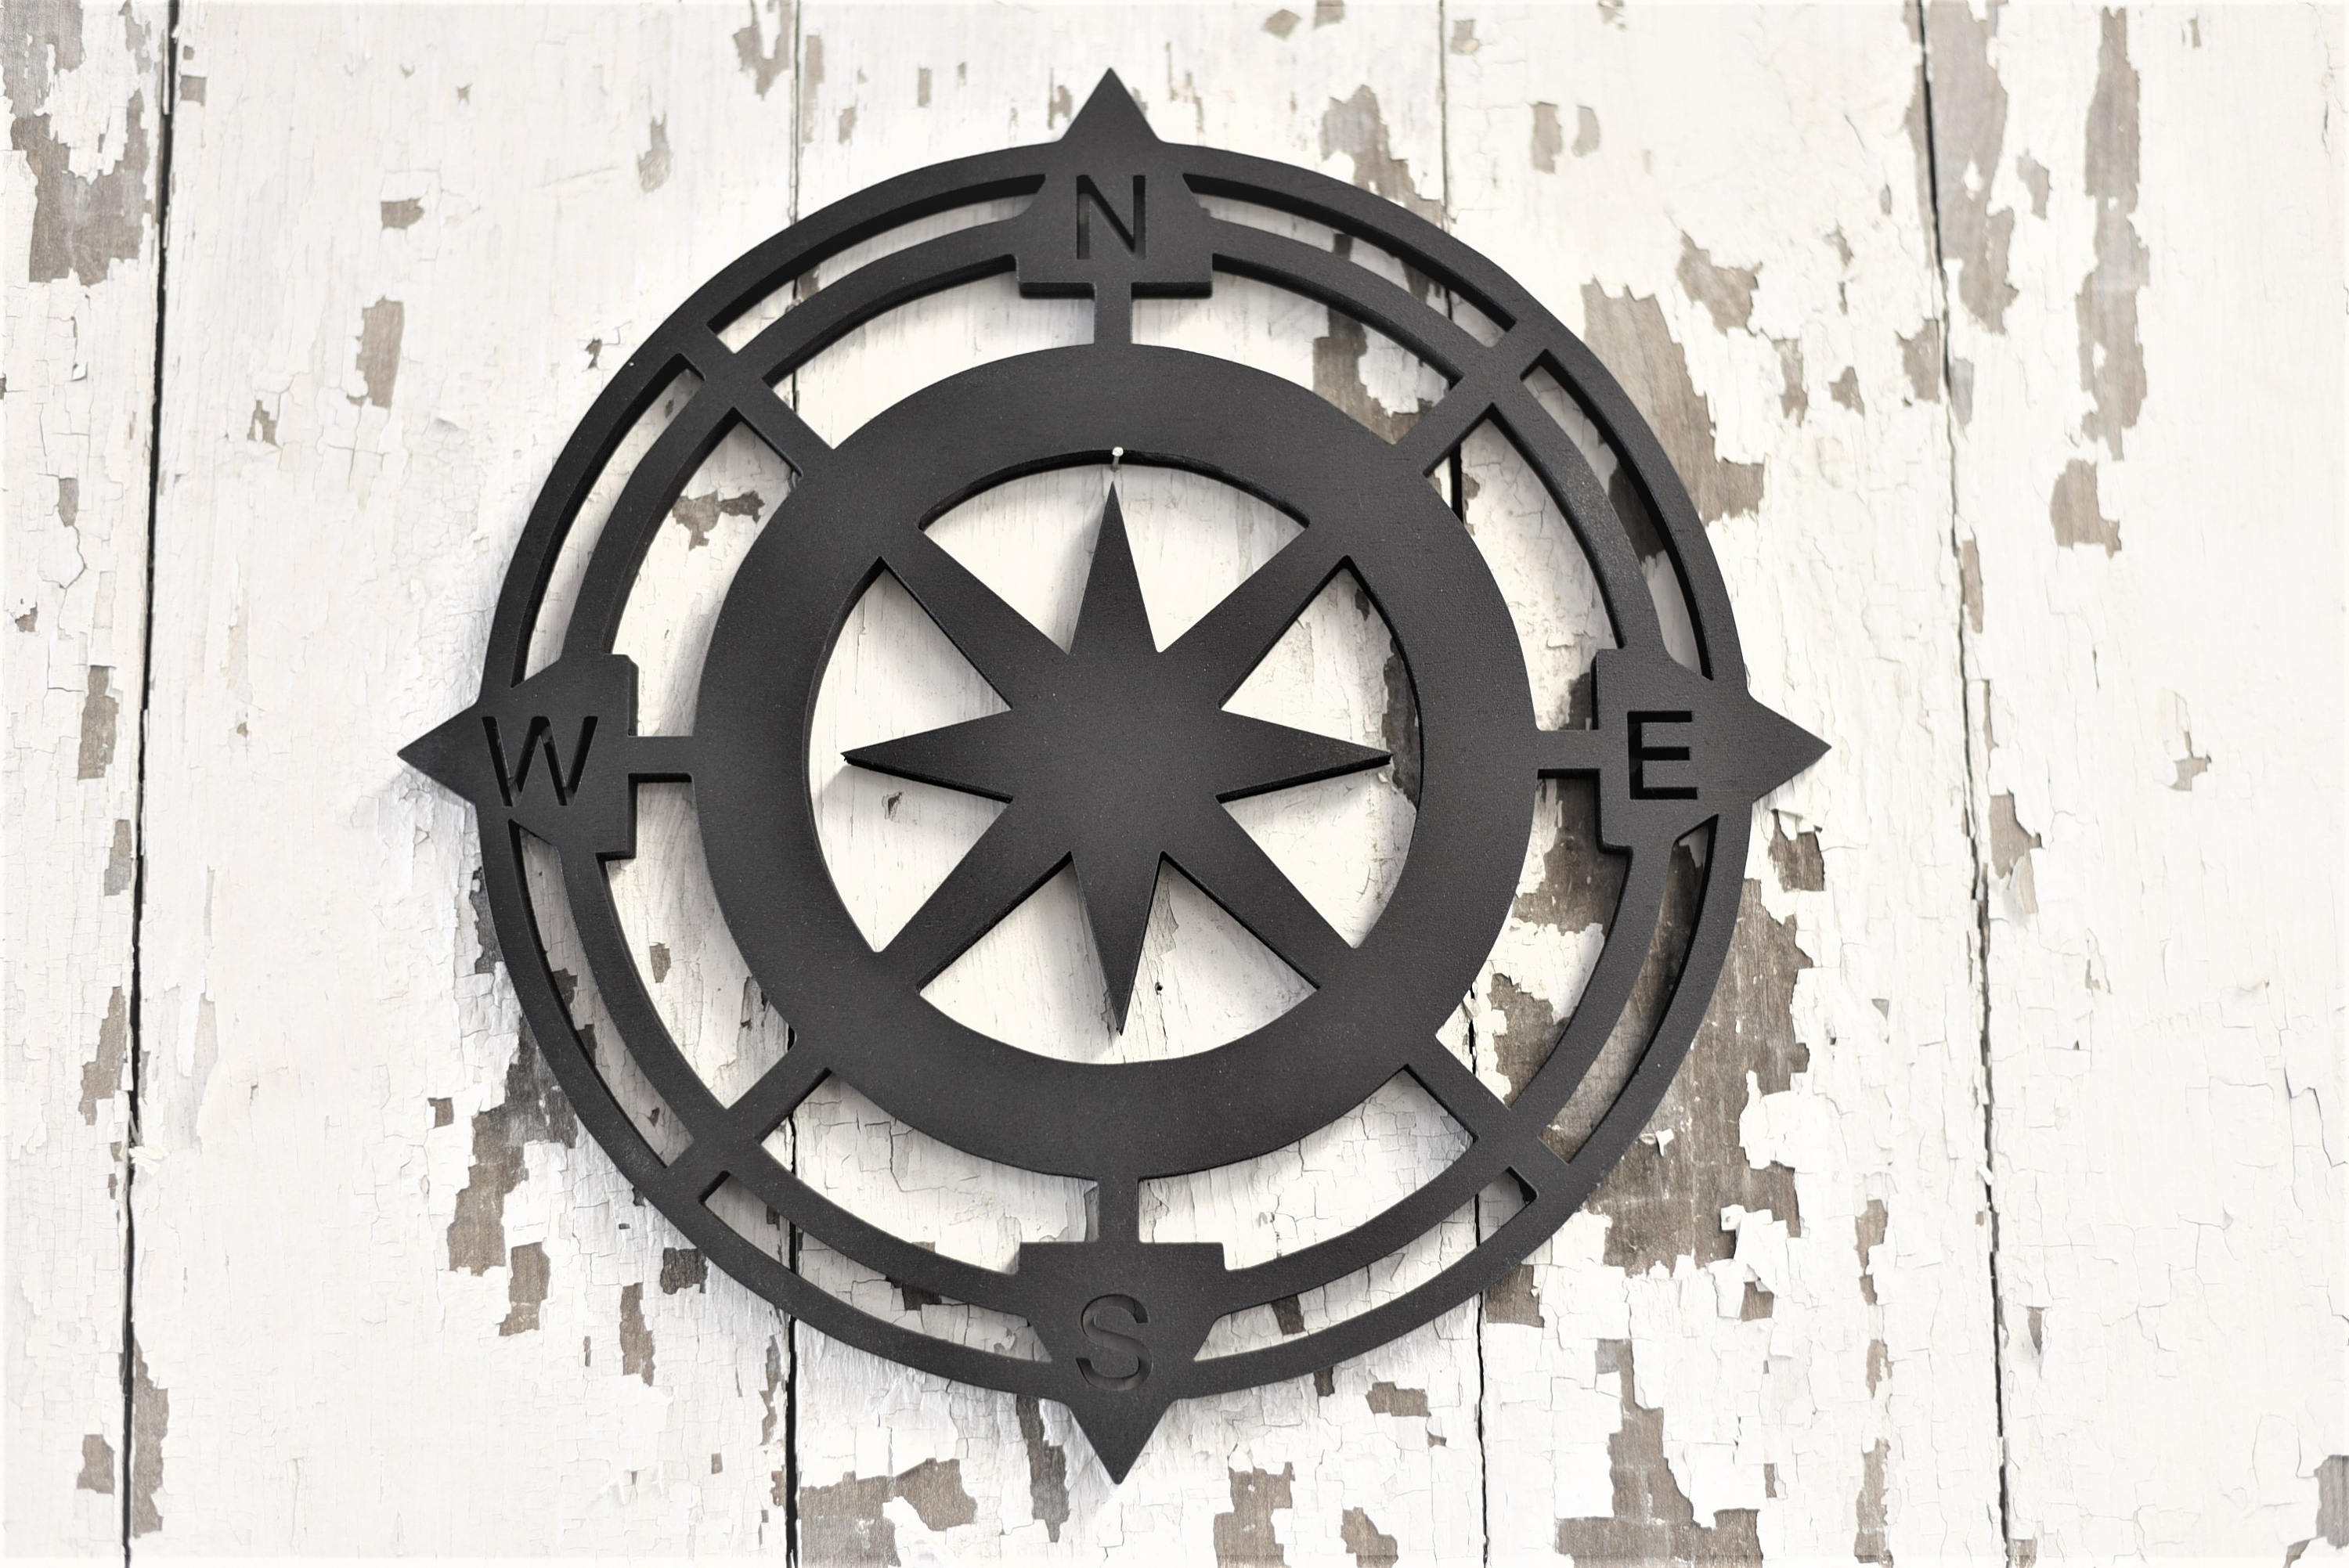 Etsy Pertaining To Round Compass Wall Decor (Gallery 11 of 20)